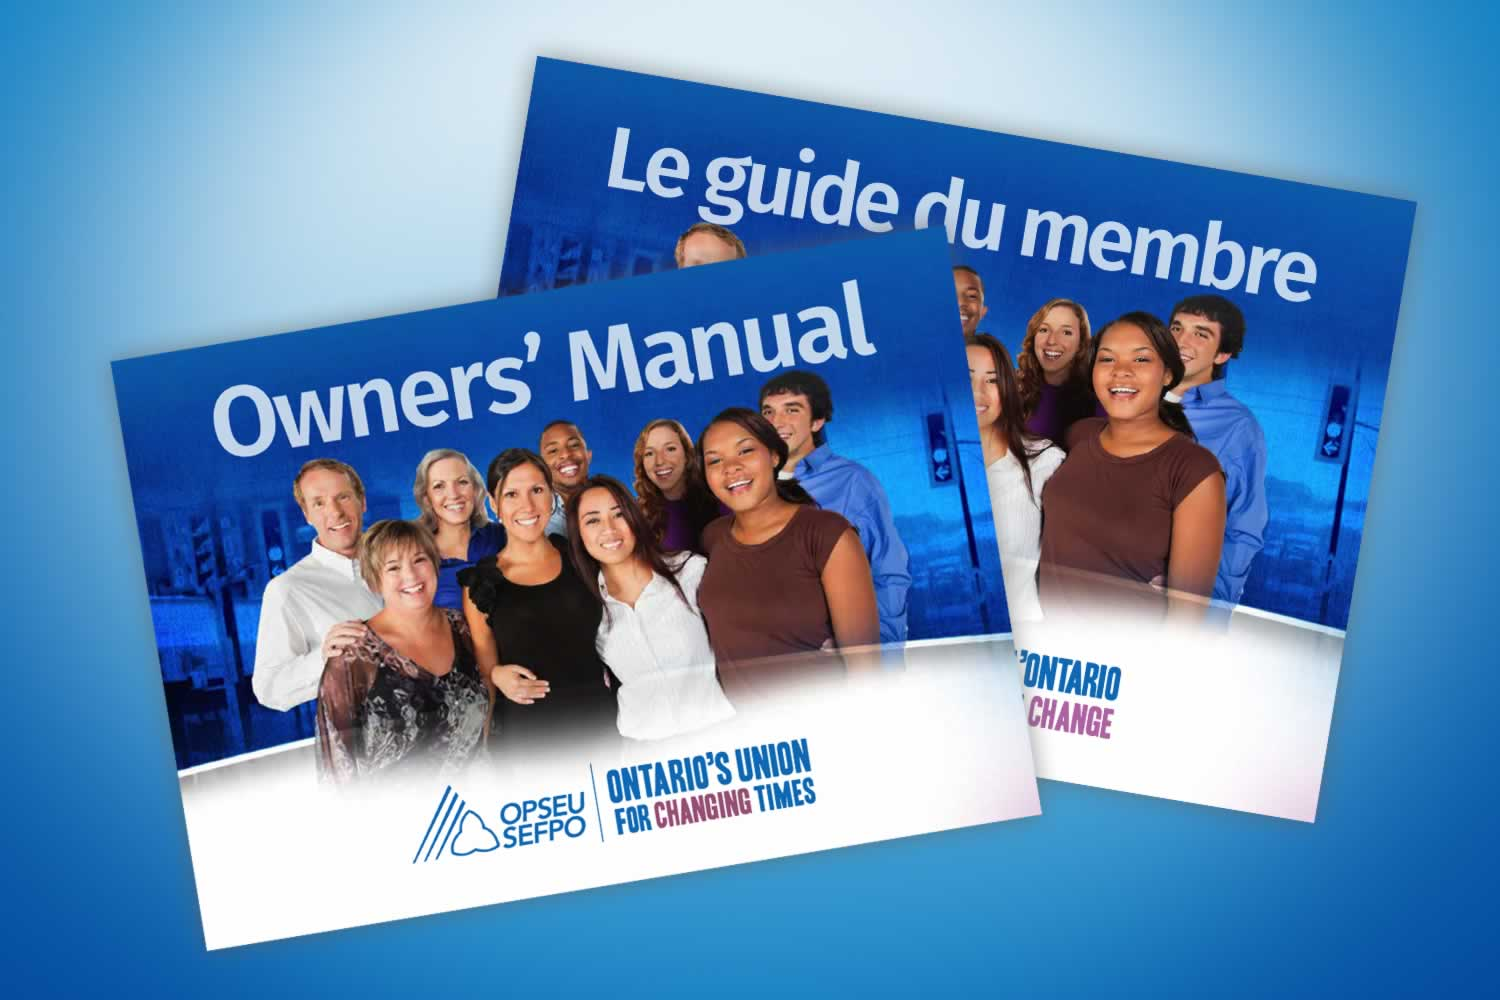 OPSEU Owner's Manual / SEFPO Le guide du membre